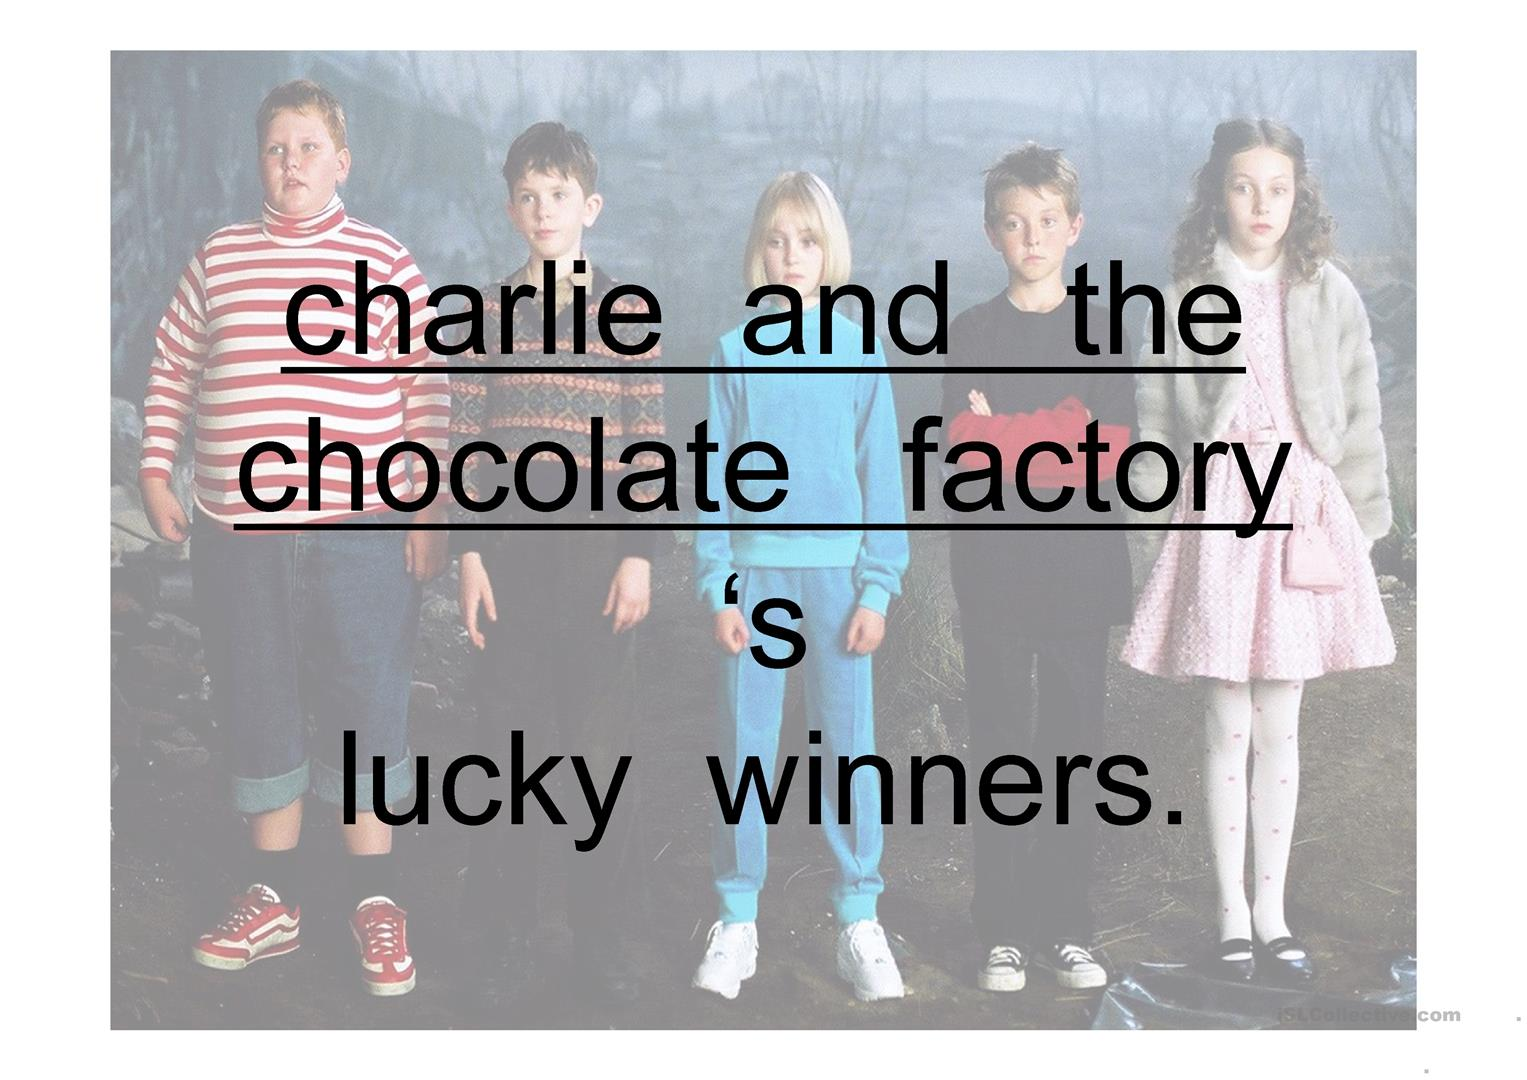 Ppt Comparison Charlie And The Chocolate Factory